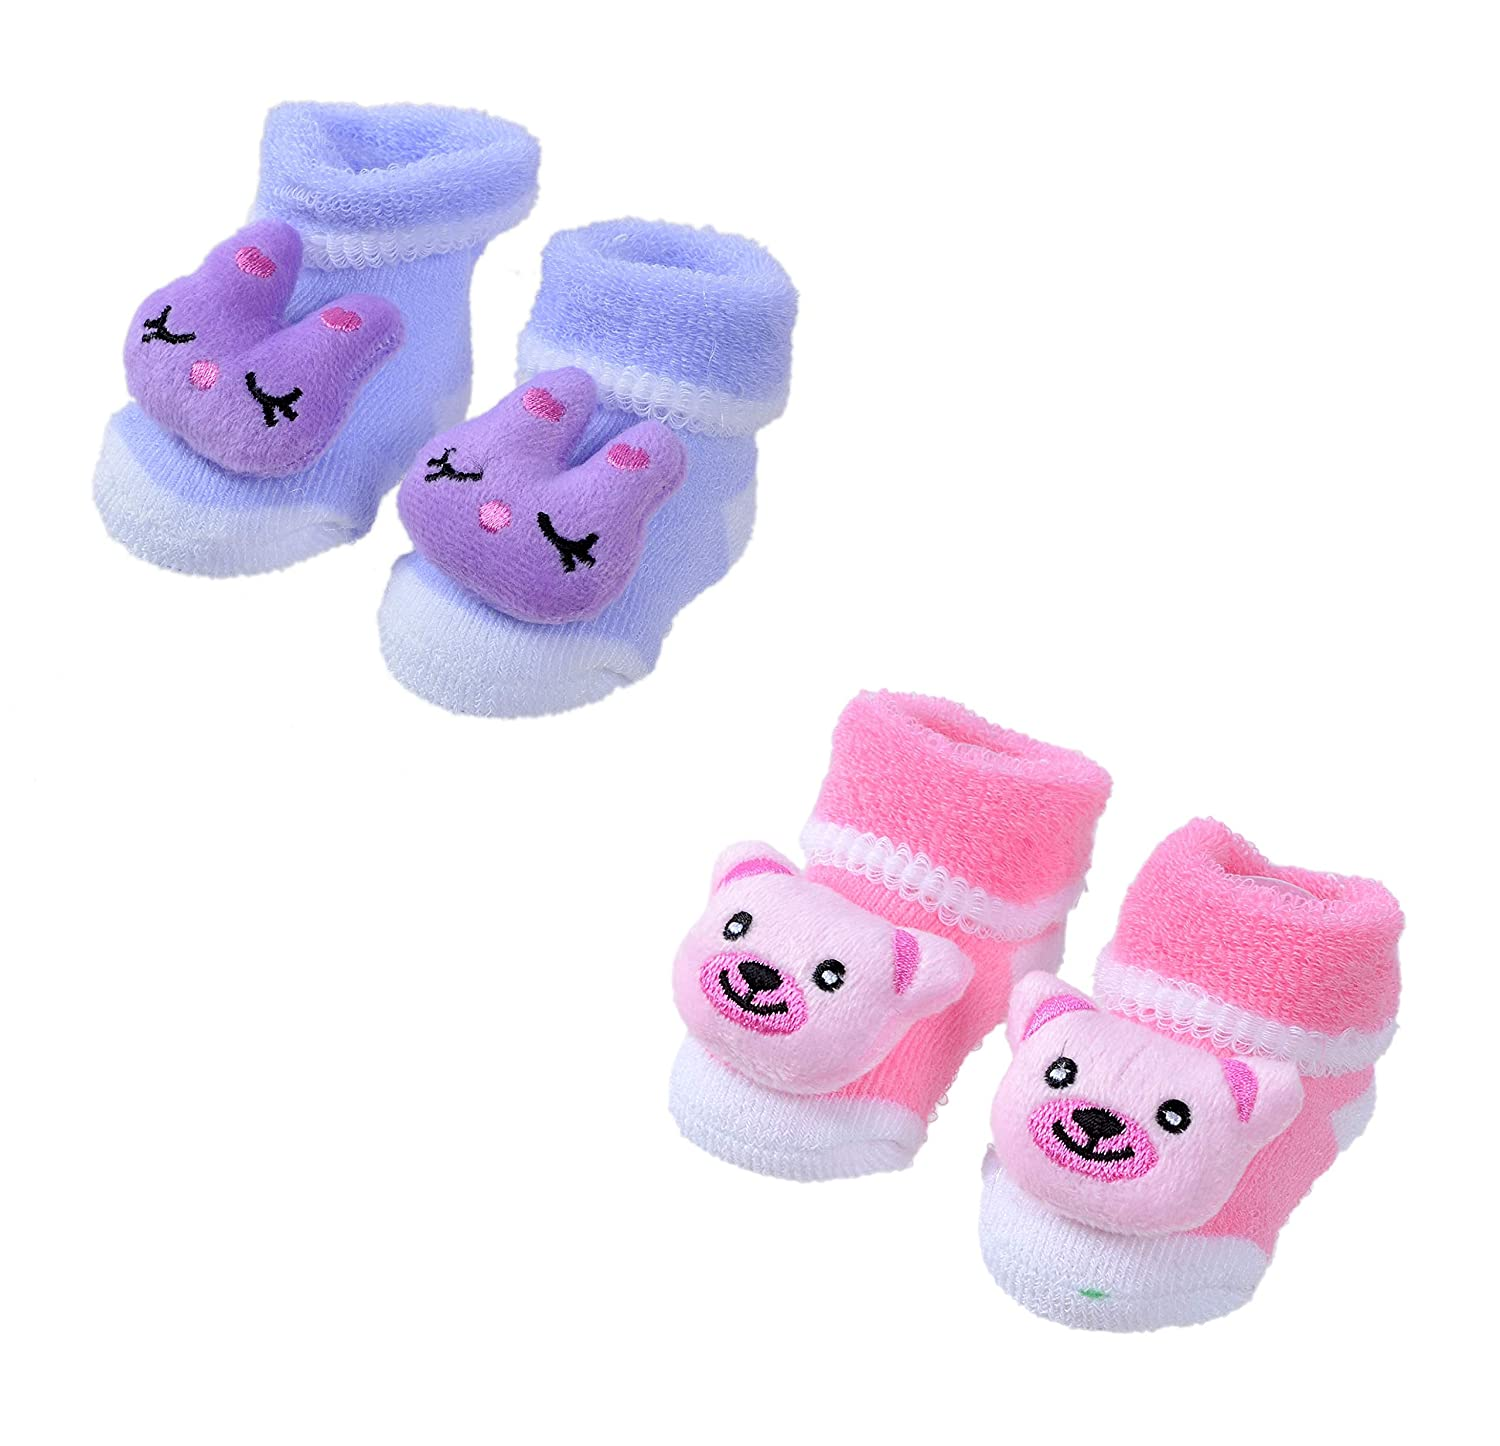 SHOP FRENZY KIDS/INFANT BOOTIES/SHOES